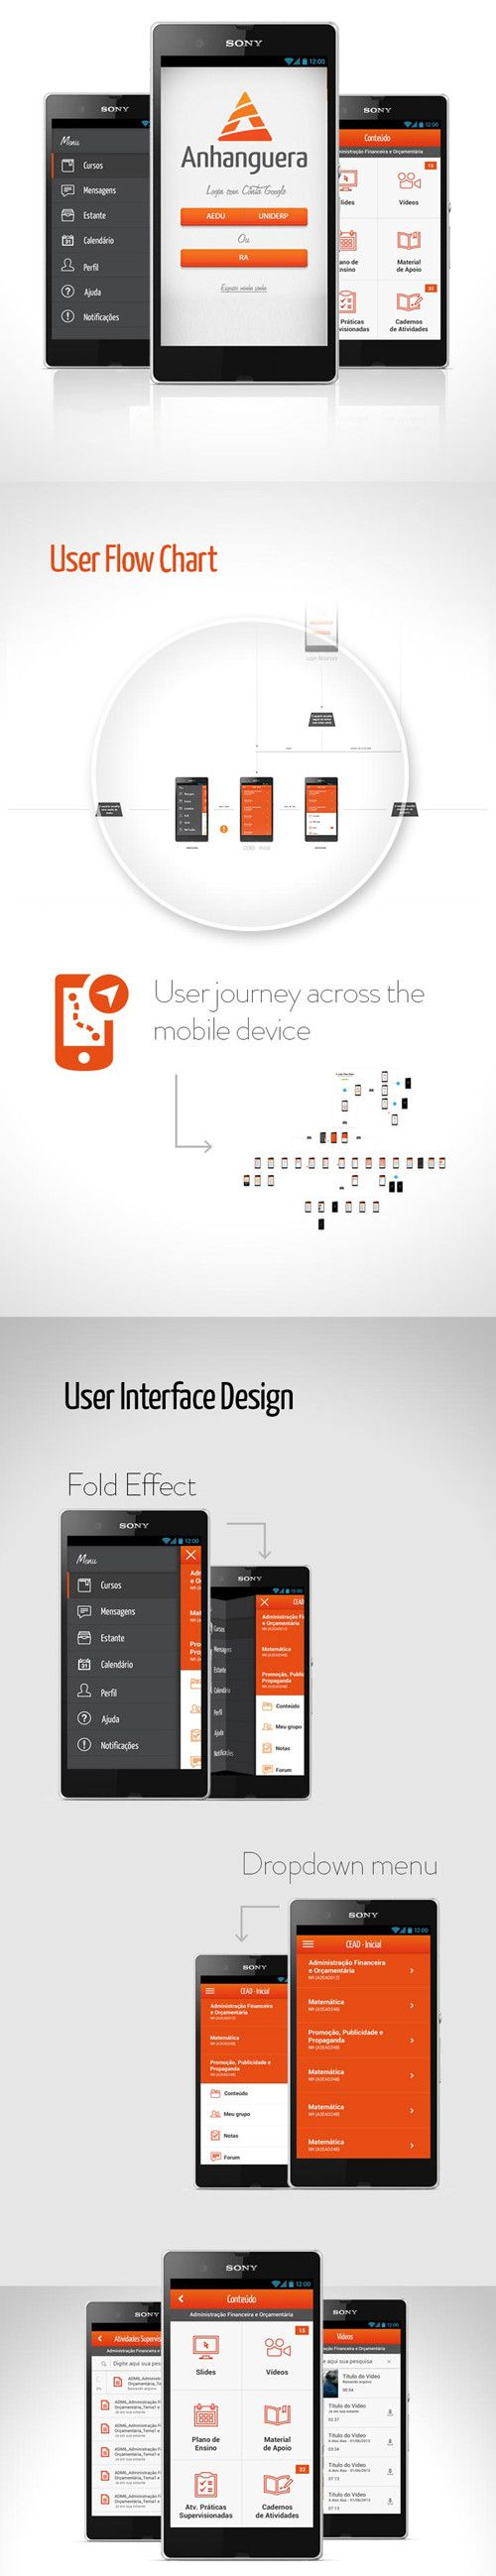 Another great example of the simple use on one color. This with the simple white on gray, and reversed orange on white is very nice.  20 stunning examples of minimal mobile UI design | Econsultancy